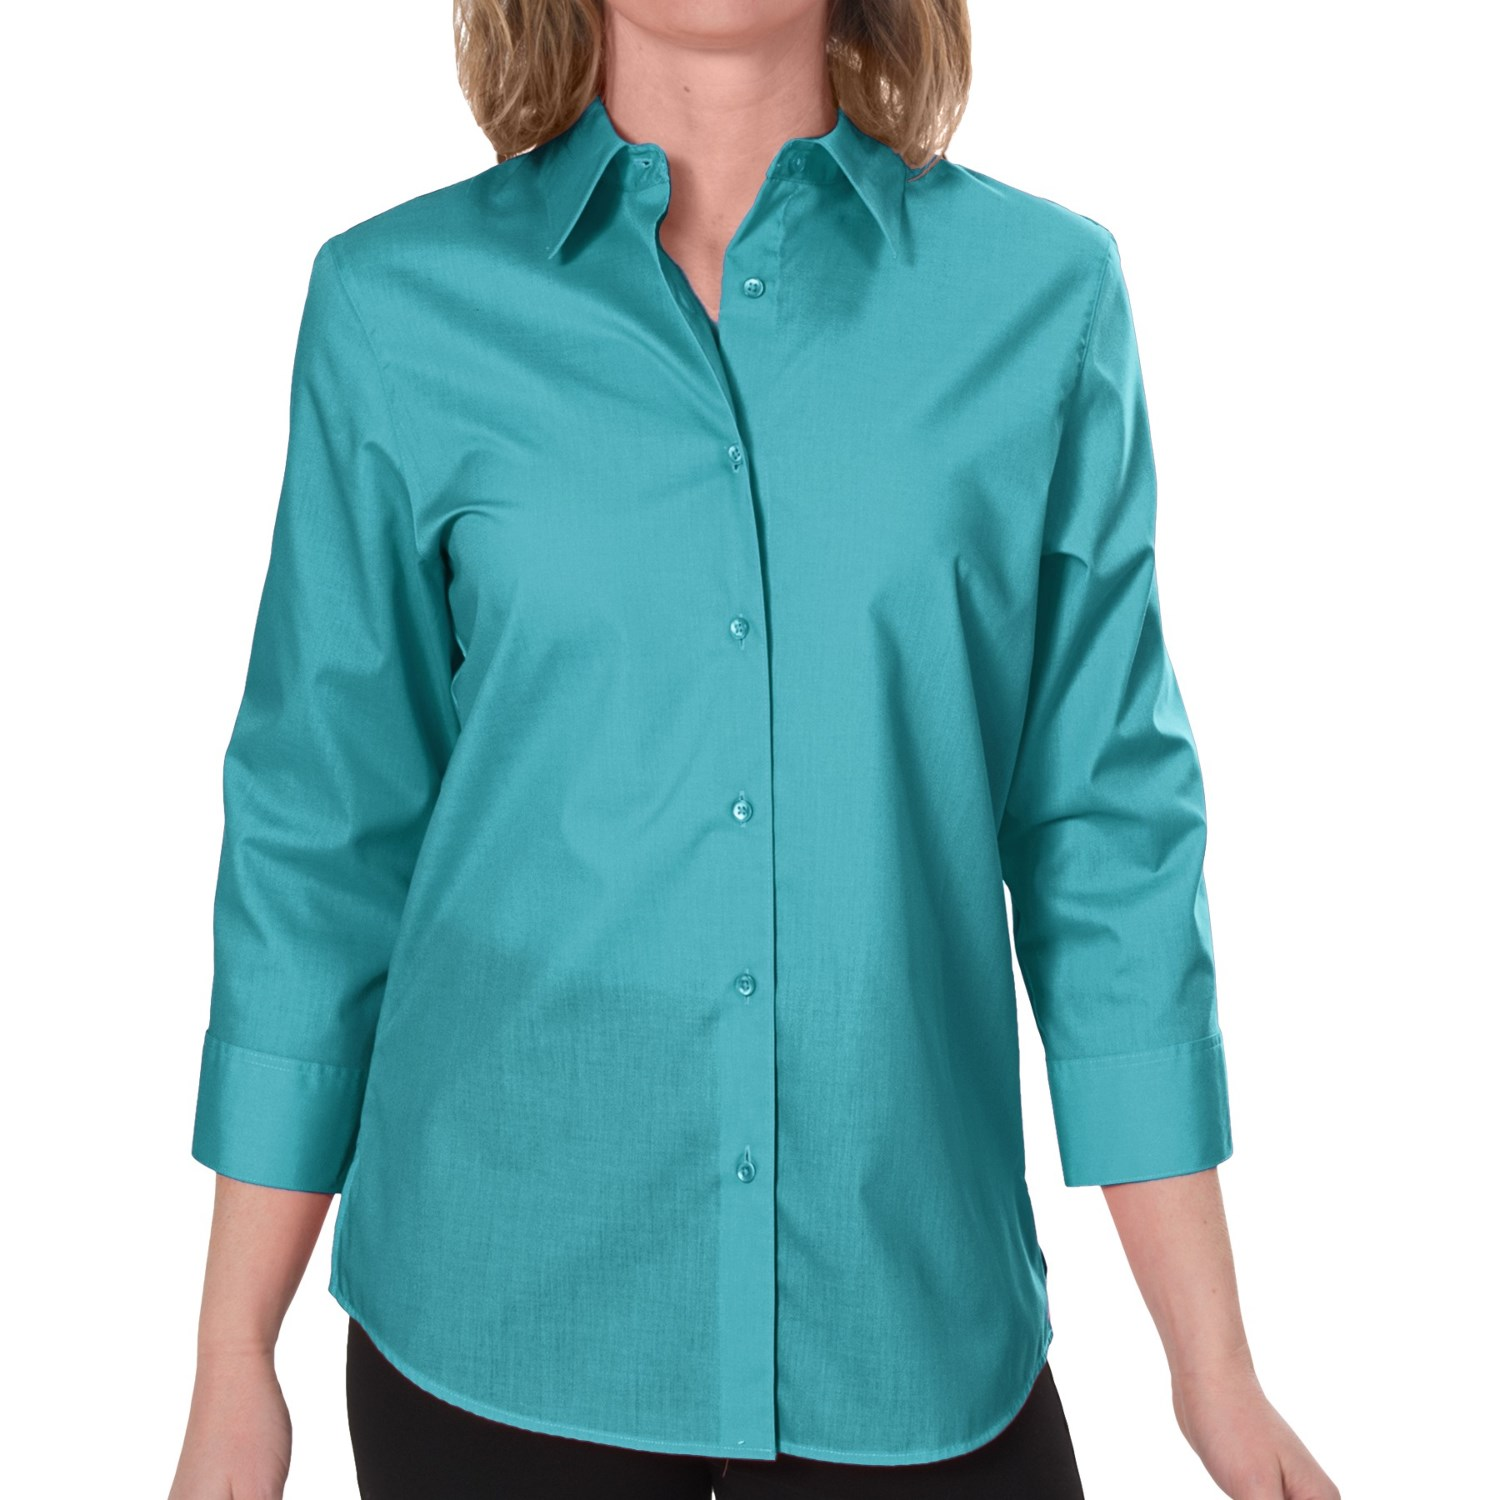 Foxcroft essentials shaped shirt wrinkle free 3 4 Wrinkle free shirts for women